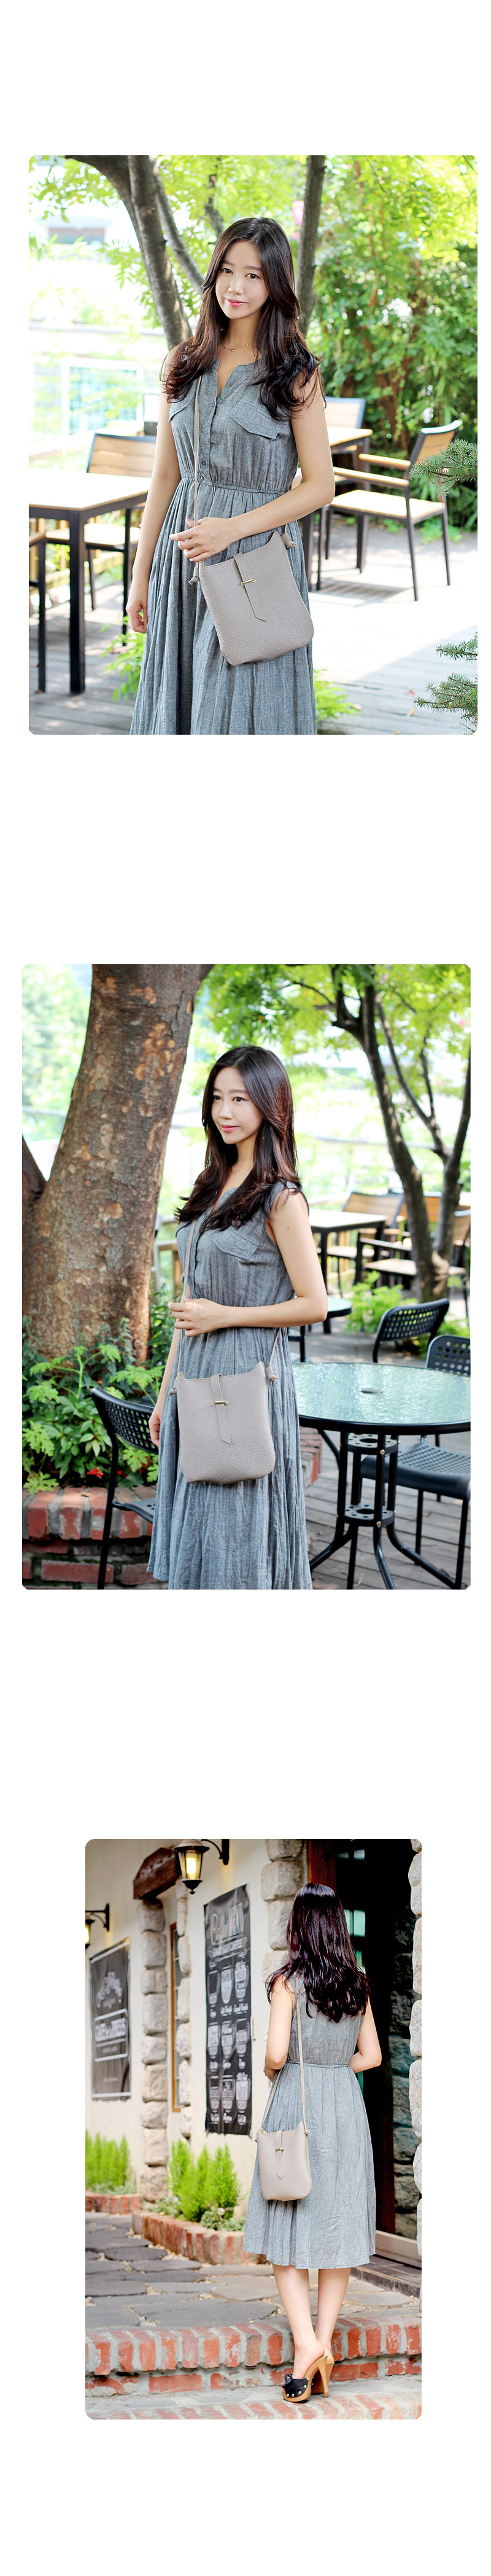 Shoulder&tote bag no.K52006view-M